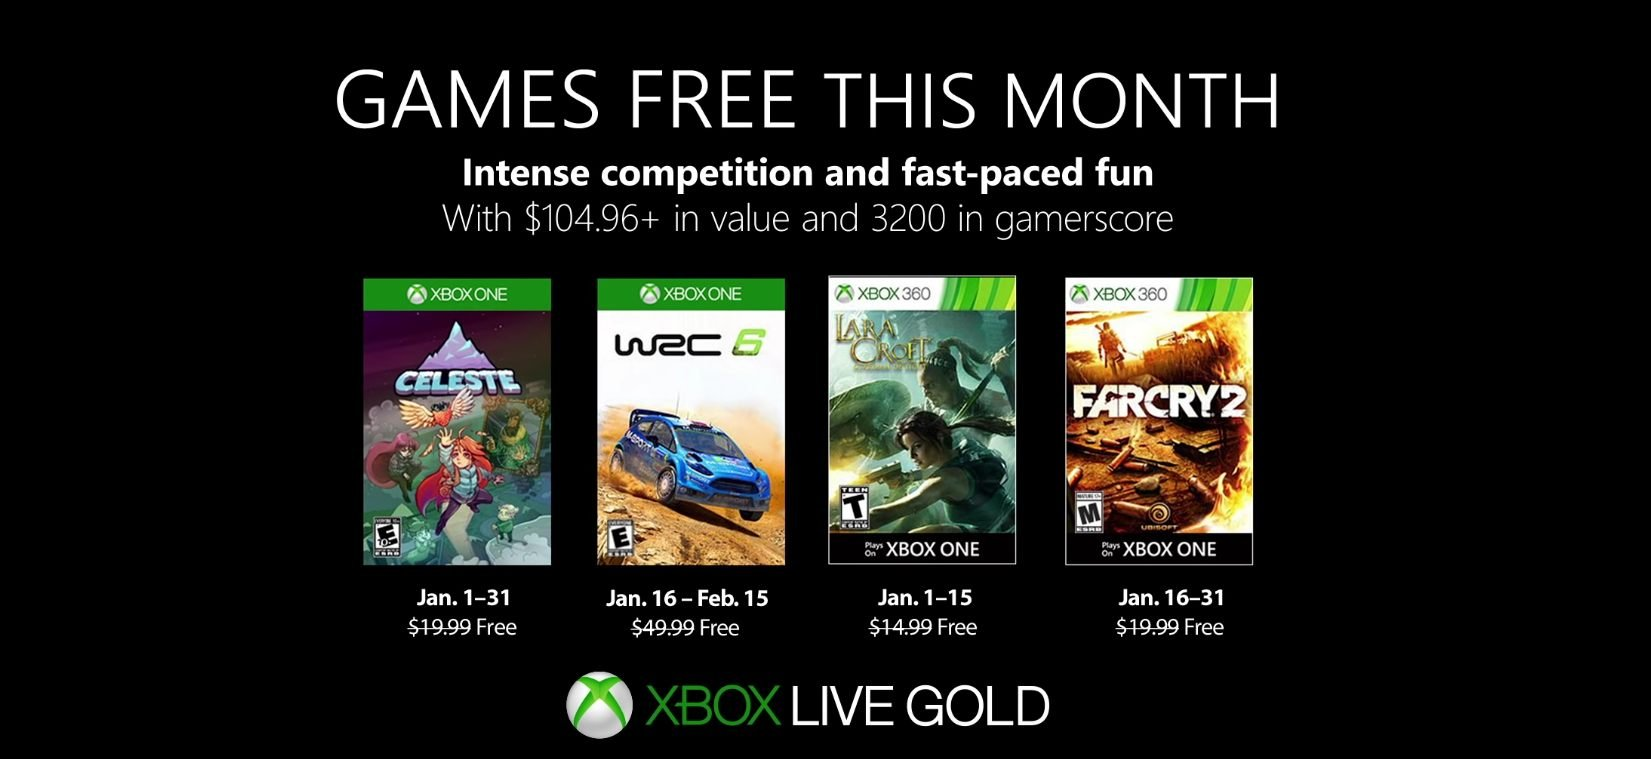 xbox live games with gold january free games celeste wrc 6 tomb raider far cry